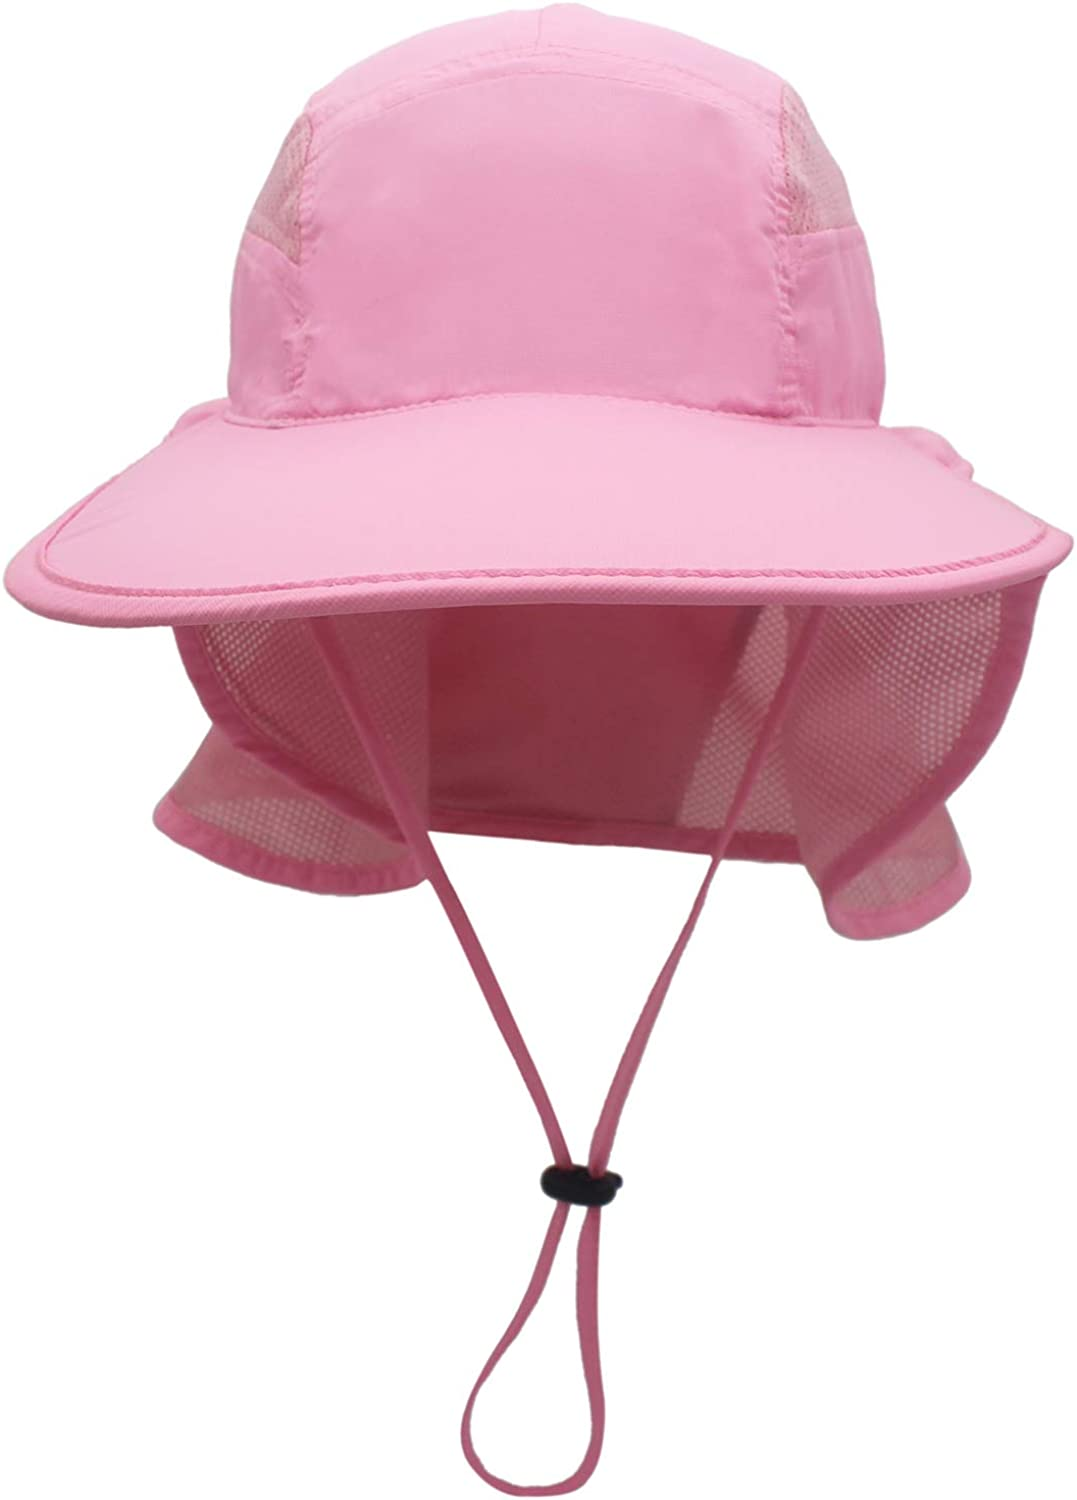 Men's Sun Hat UPF50+ Fishing Hat with Neck Protector for Women Outdoor UV Protection Wide Brim Sun Hat